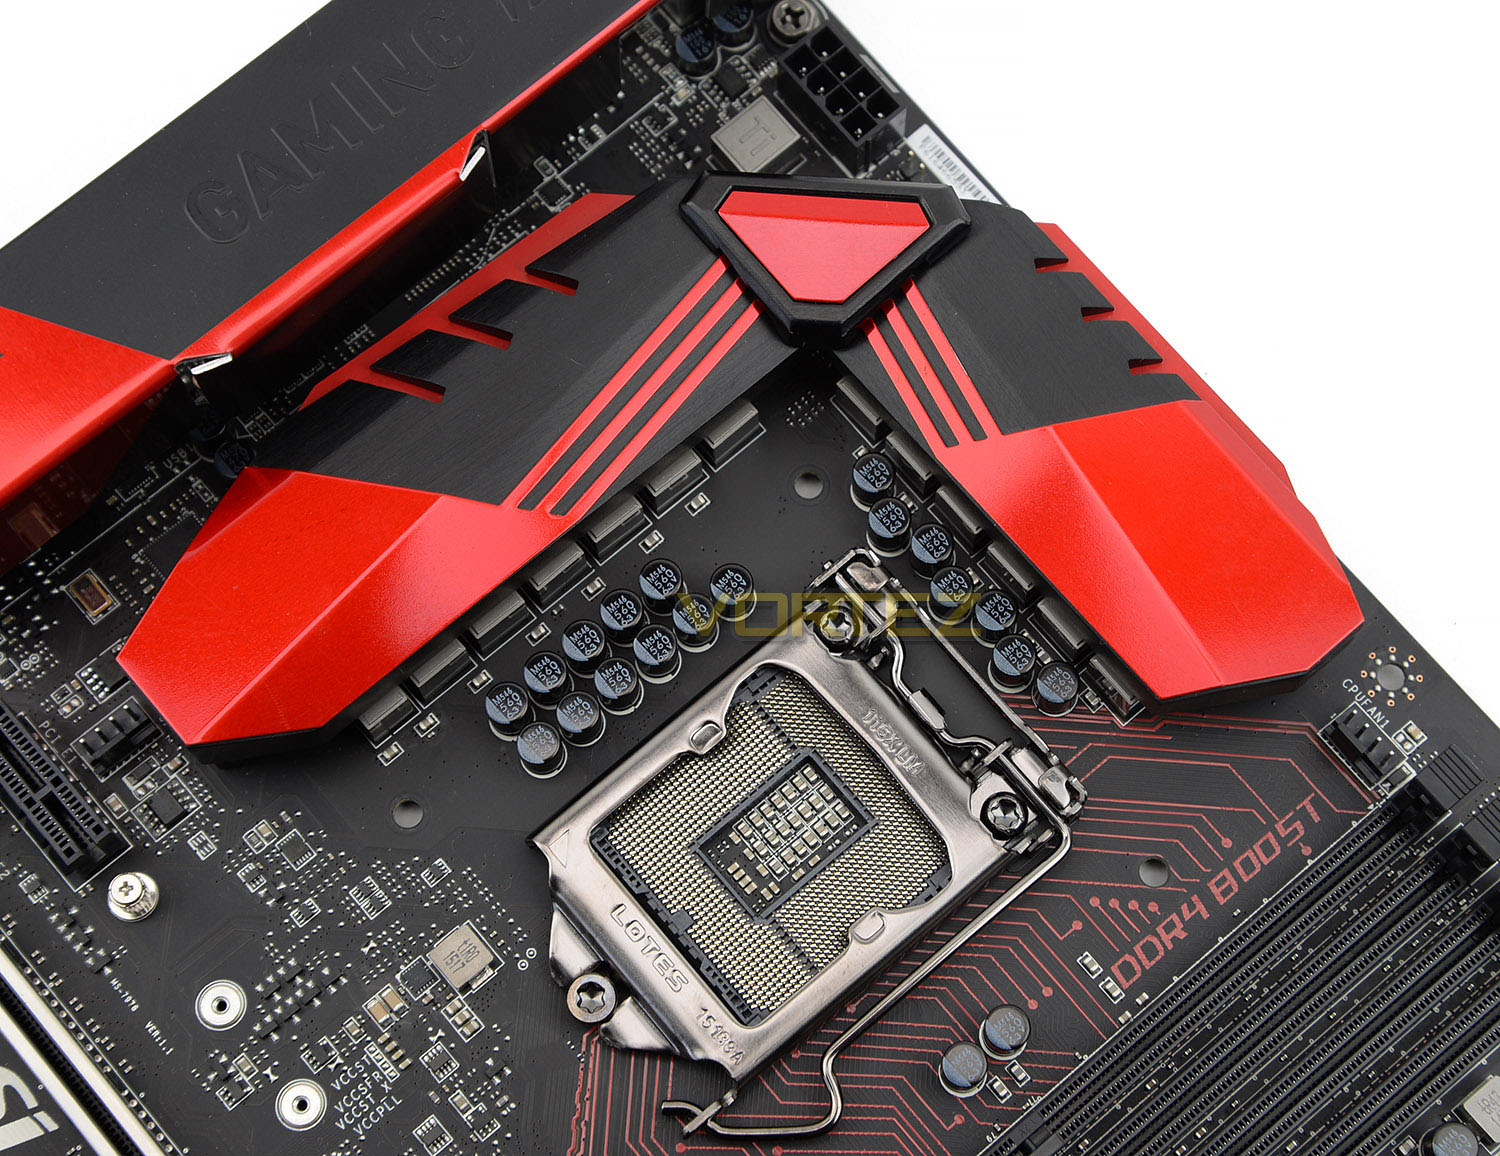 http://www.vortez.net/articles_file/31319_msi%20z170a%20gaming%20m7%20review%20-%20socket.jpg